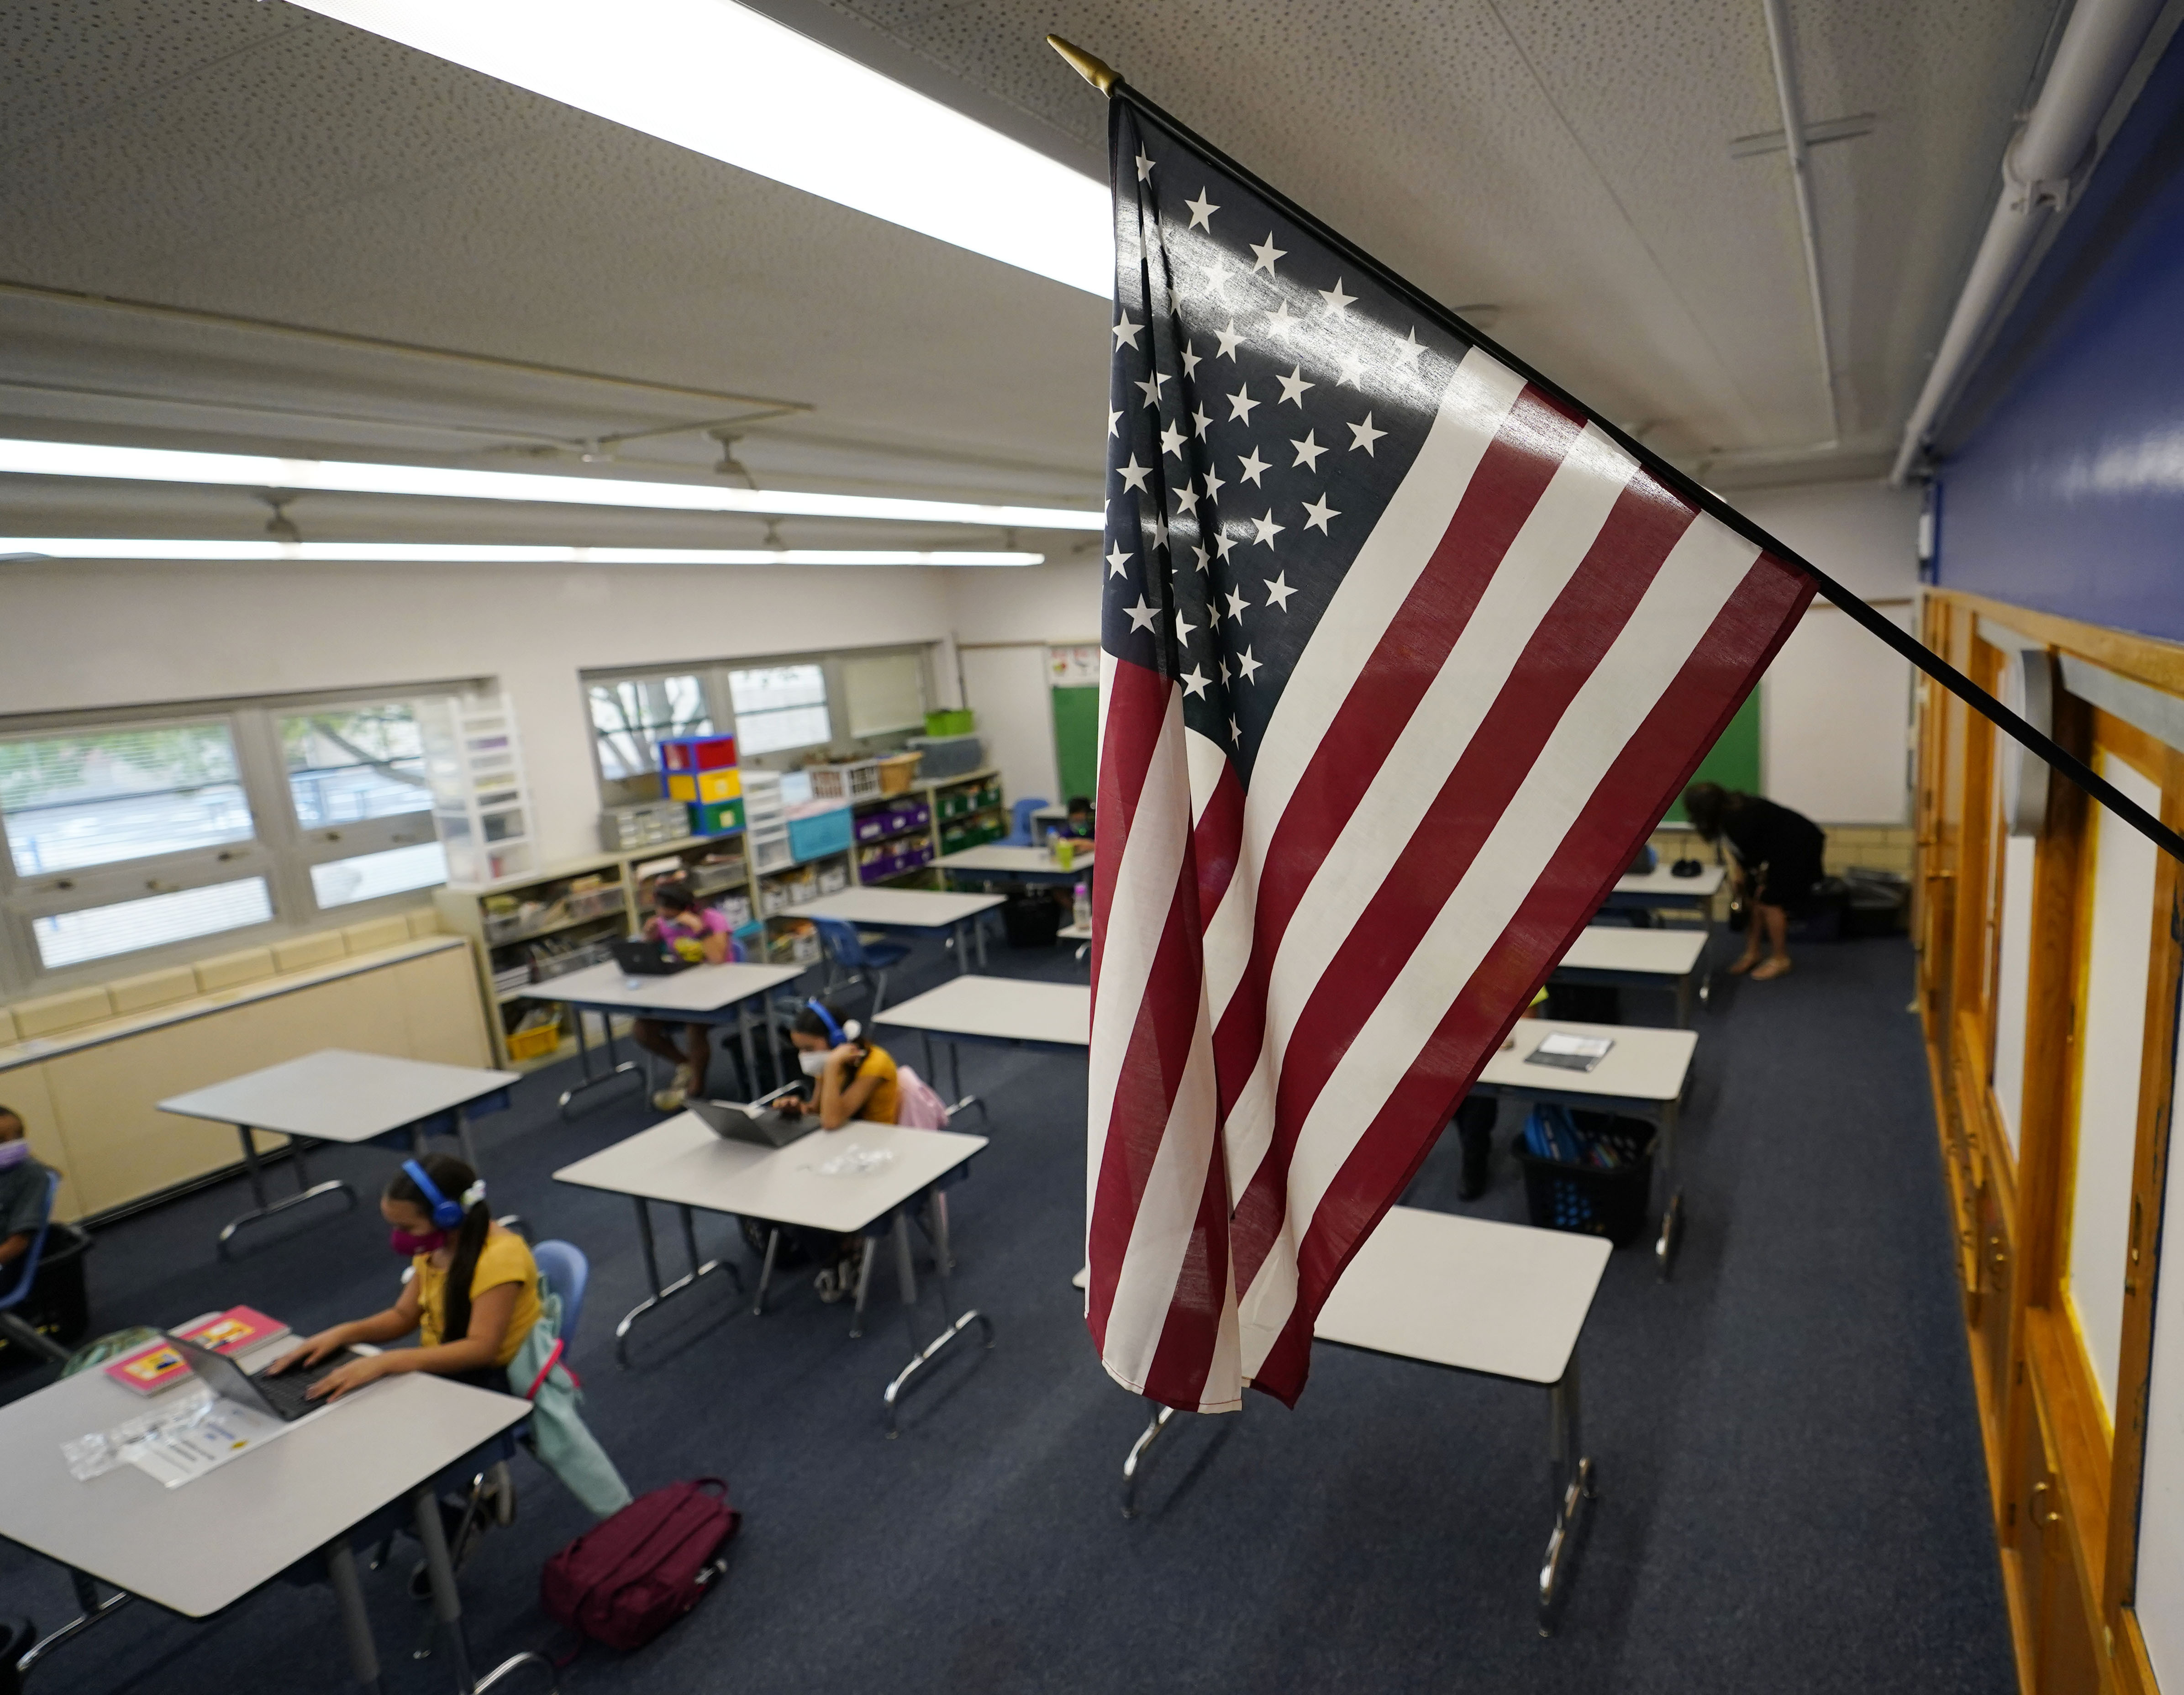 An American flag hangs over a classroom full of masked students working at desks.